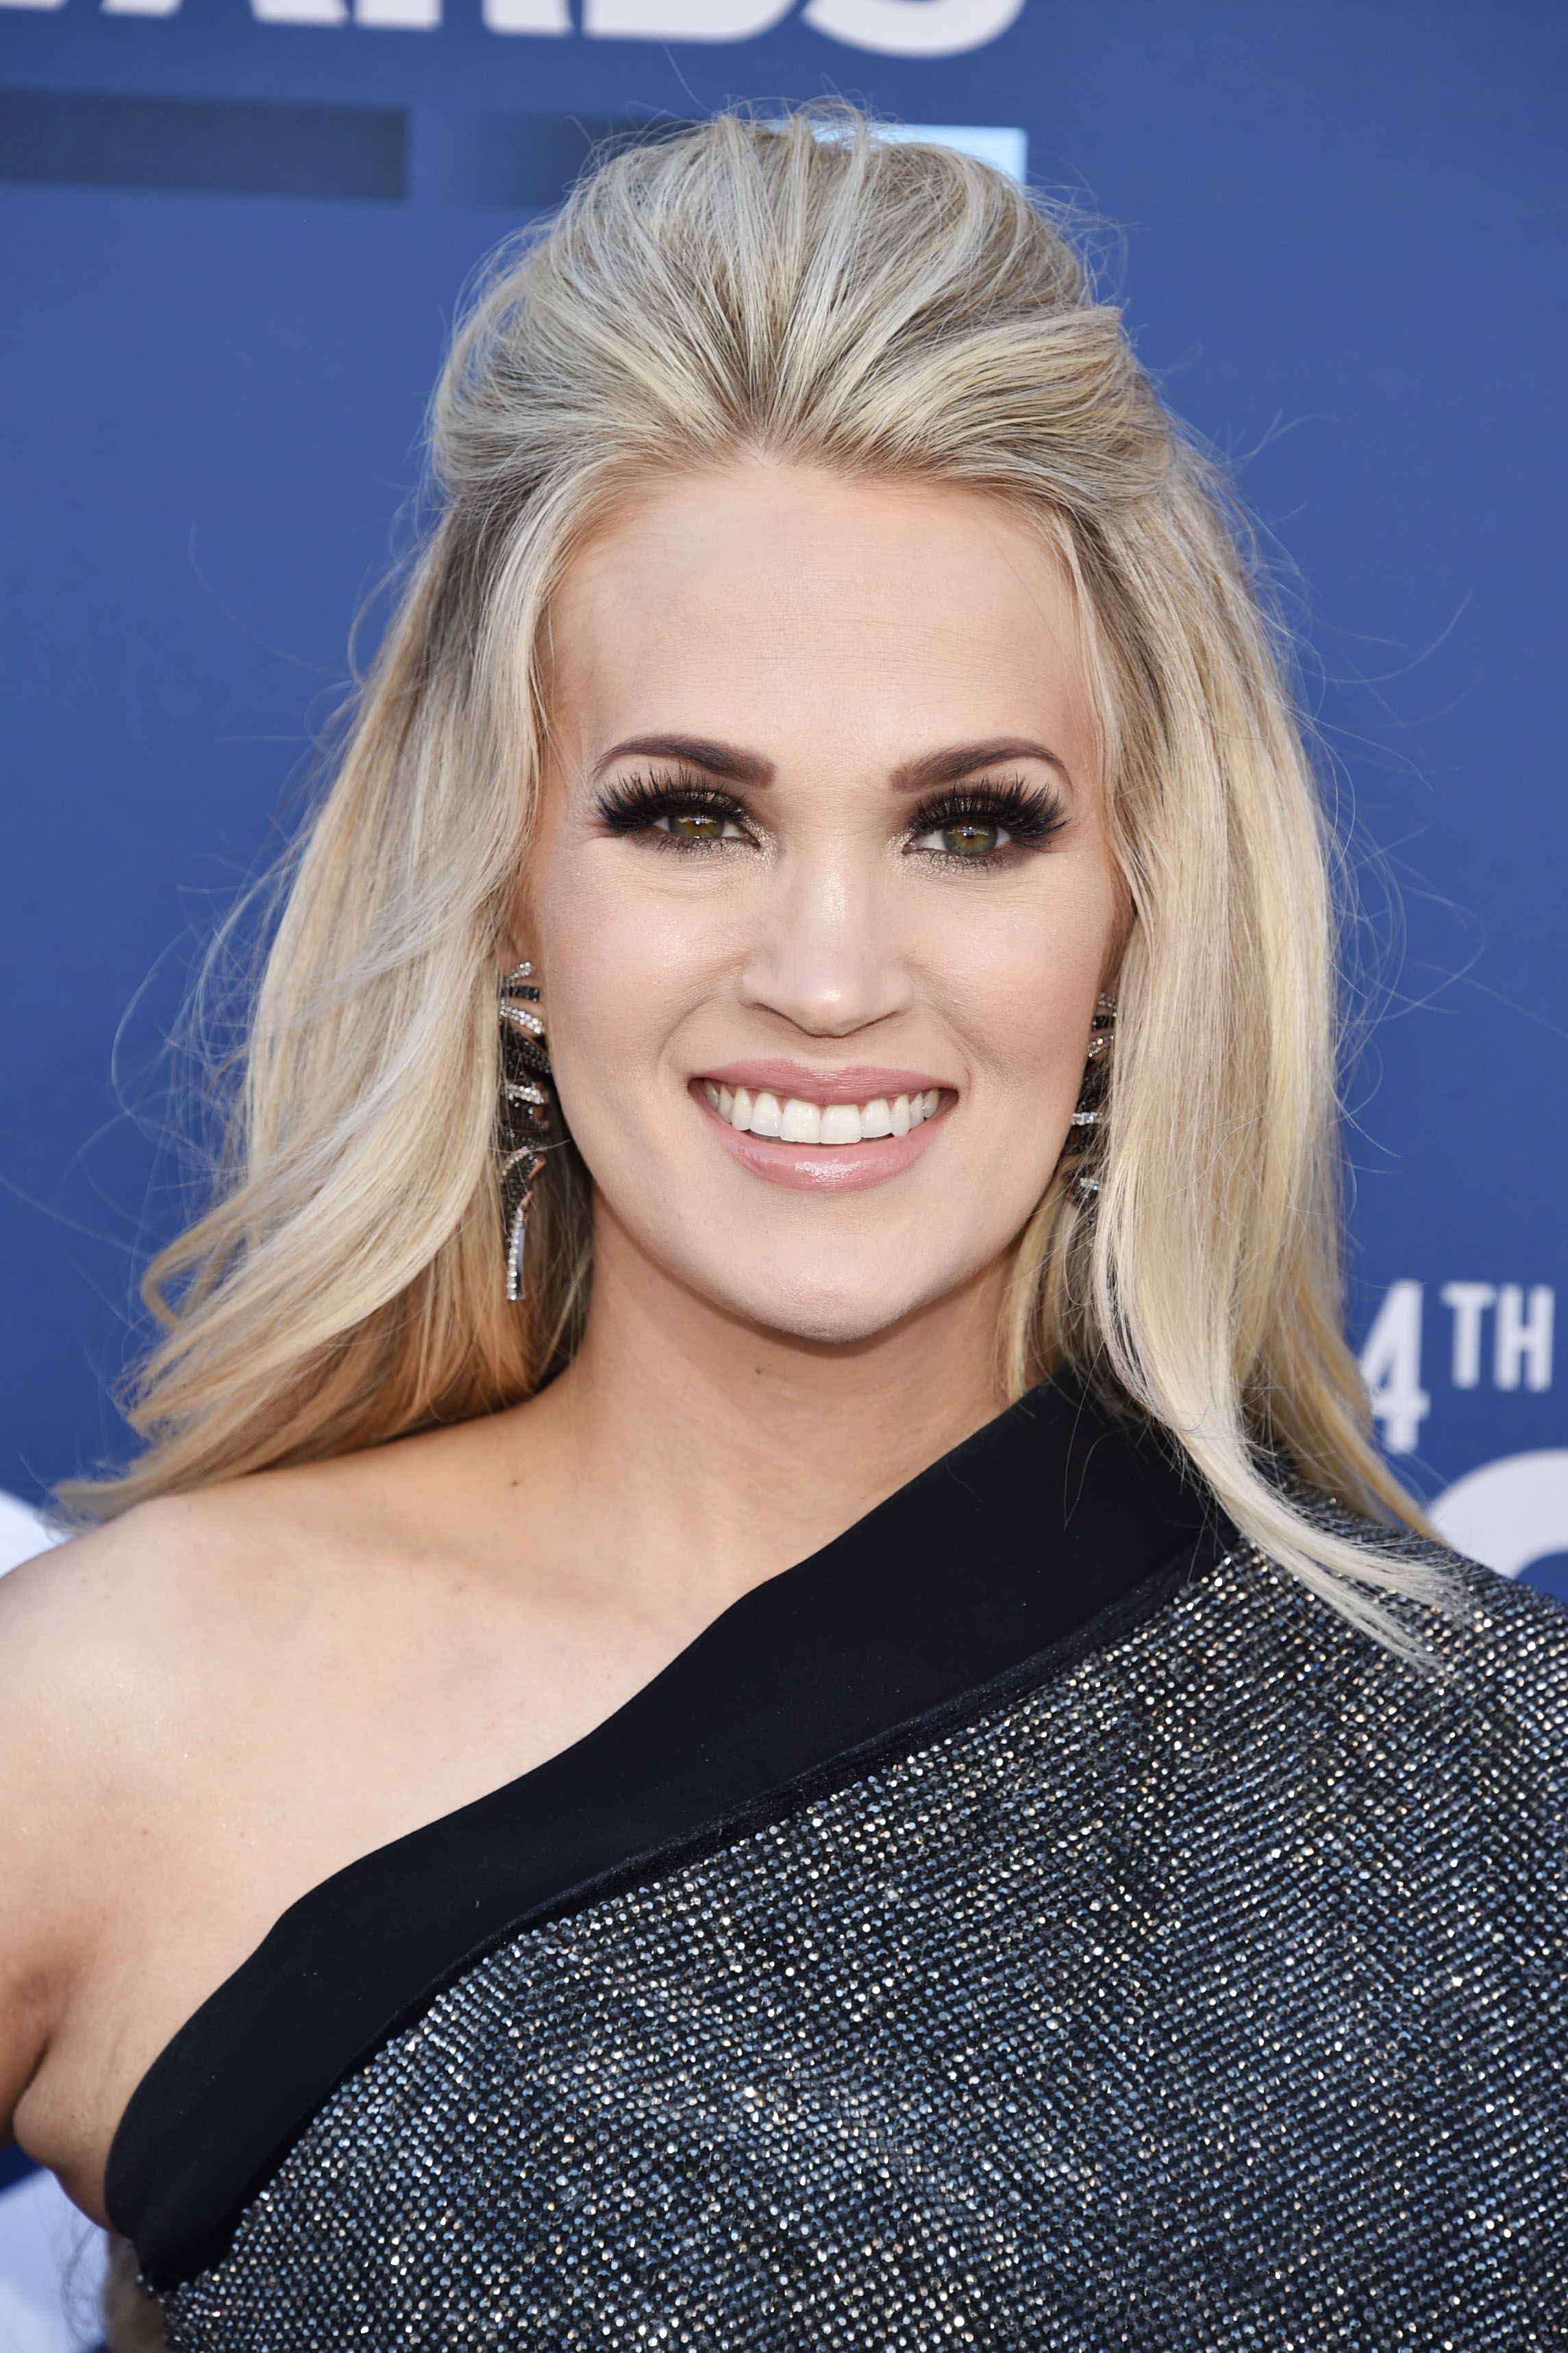 Carrie Underwood - Best Summer Hair Color